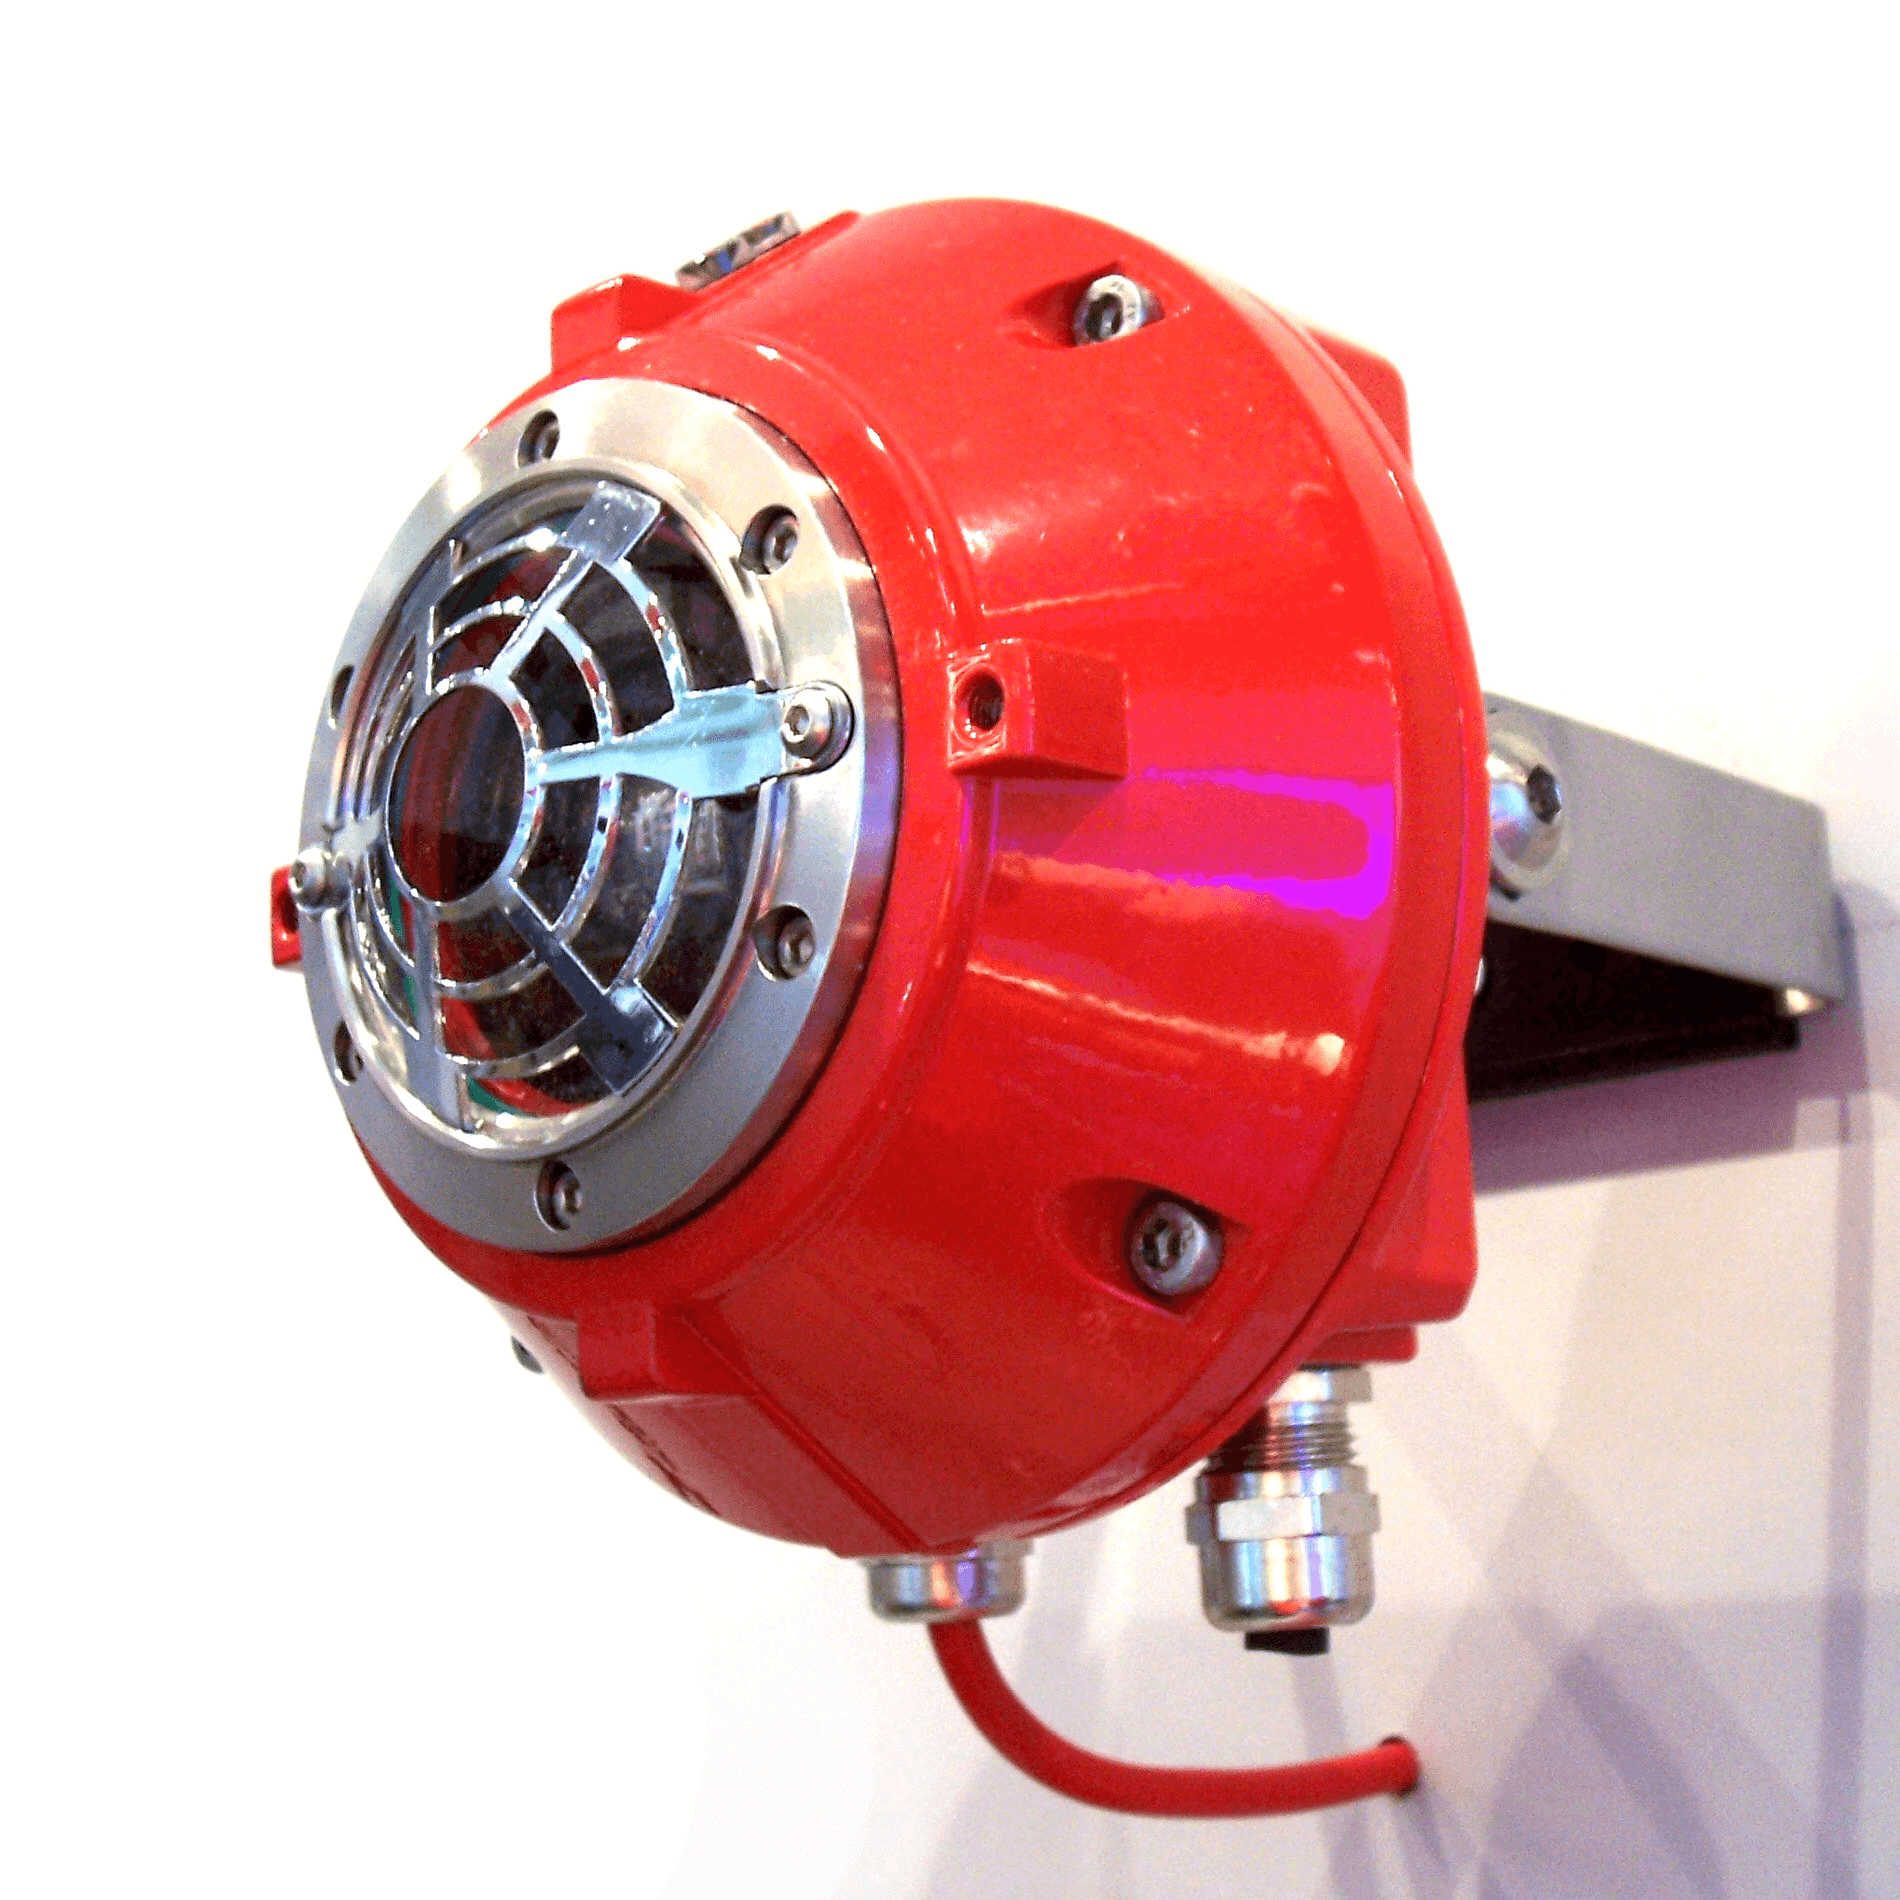 Flame Detectors Selection Guide | Engineering360